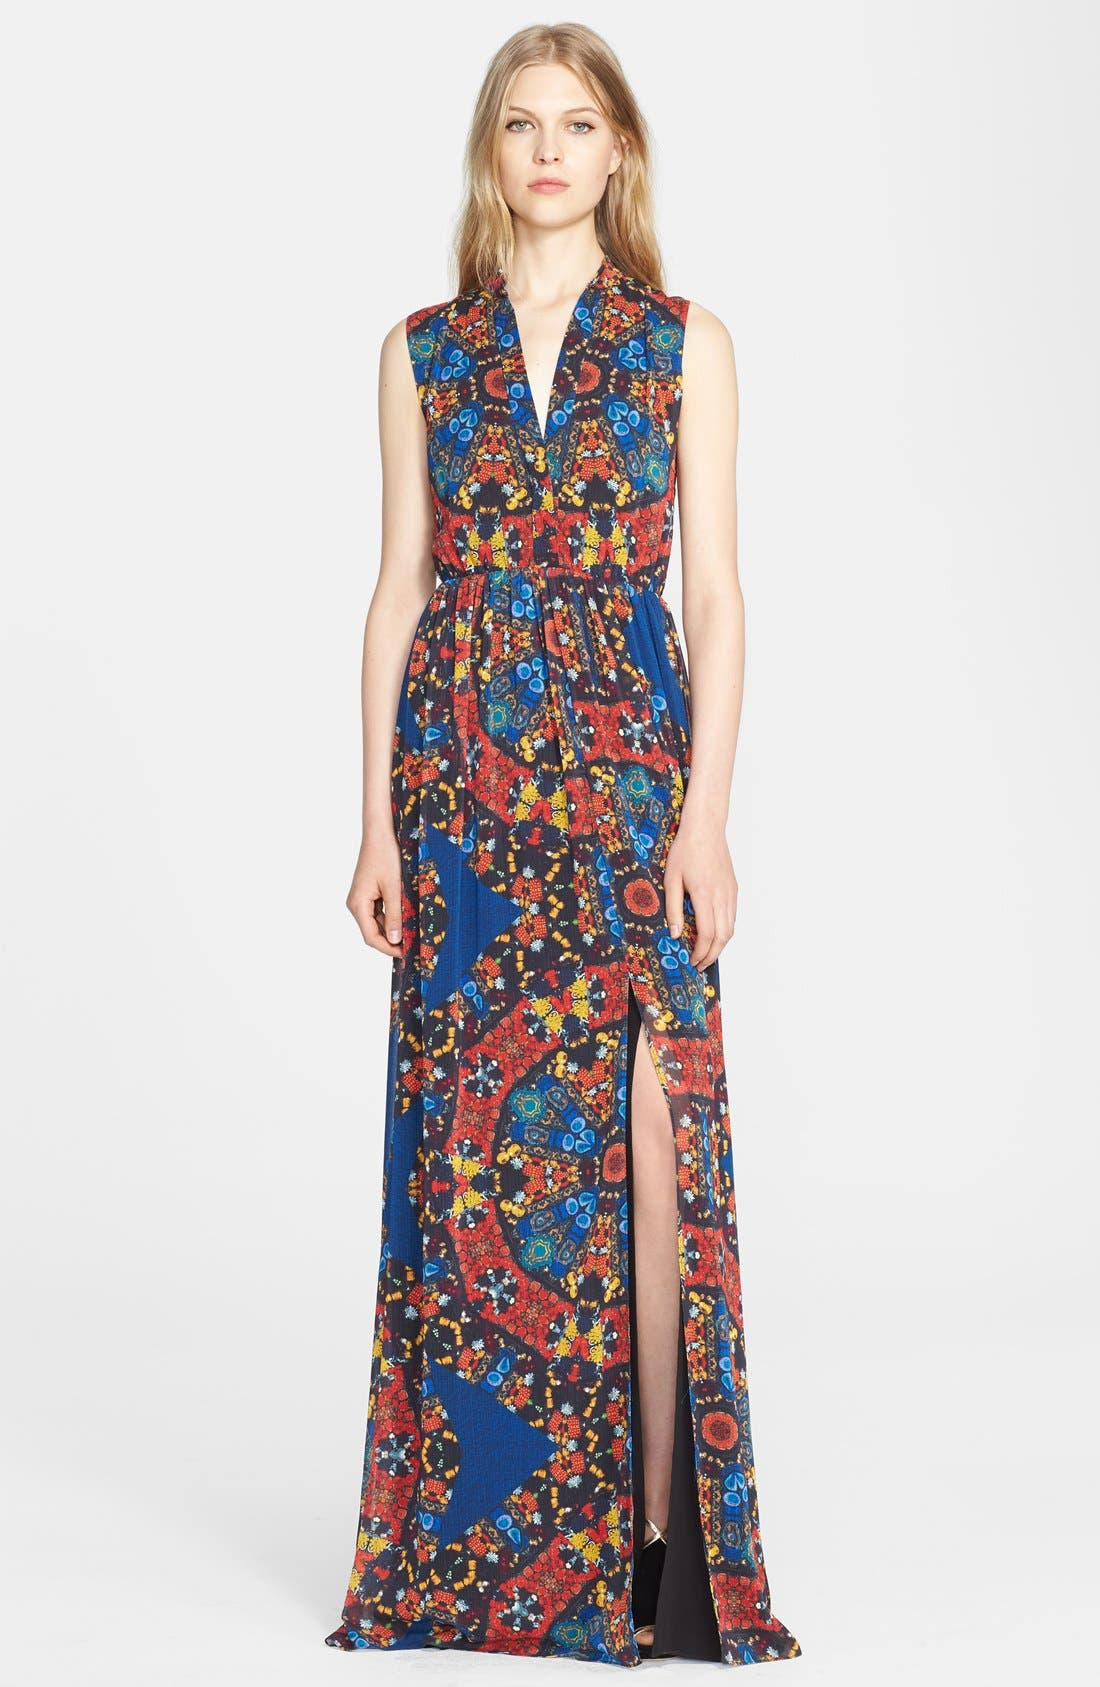 Alternate Image 1 Selected - Alice + Olivia 'Marianna' Print Crinkled Chiffon Maxi Dress